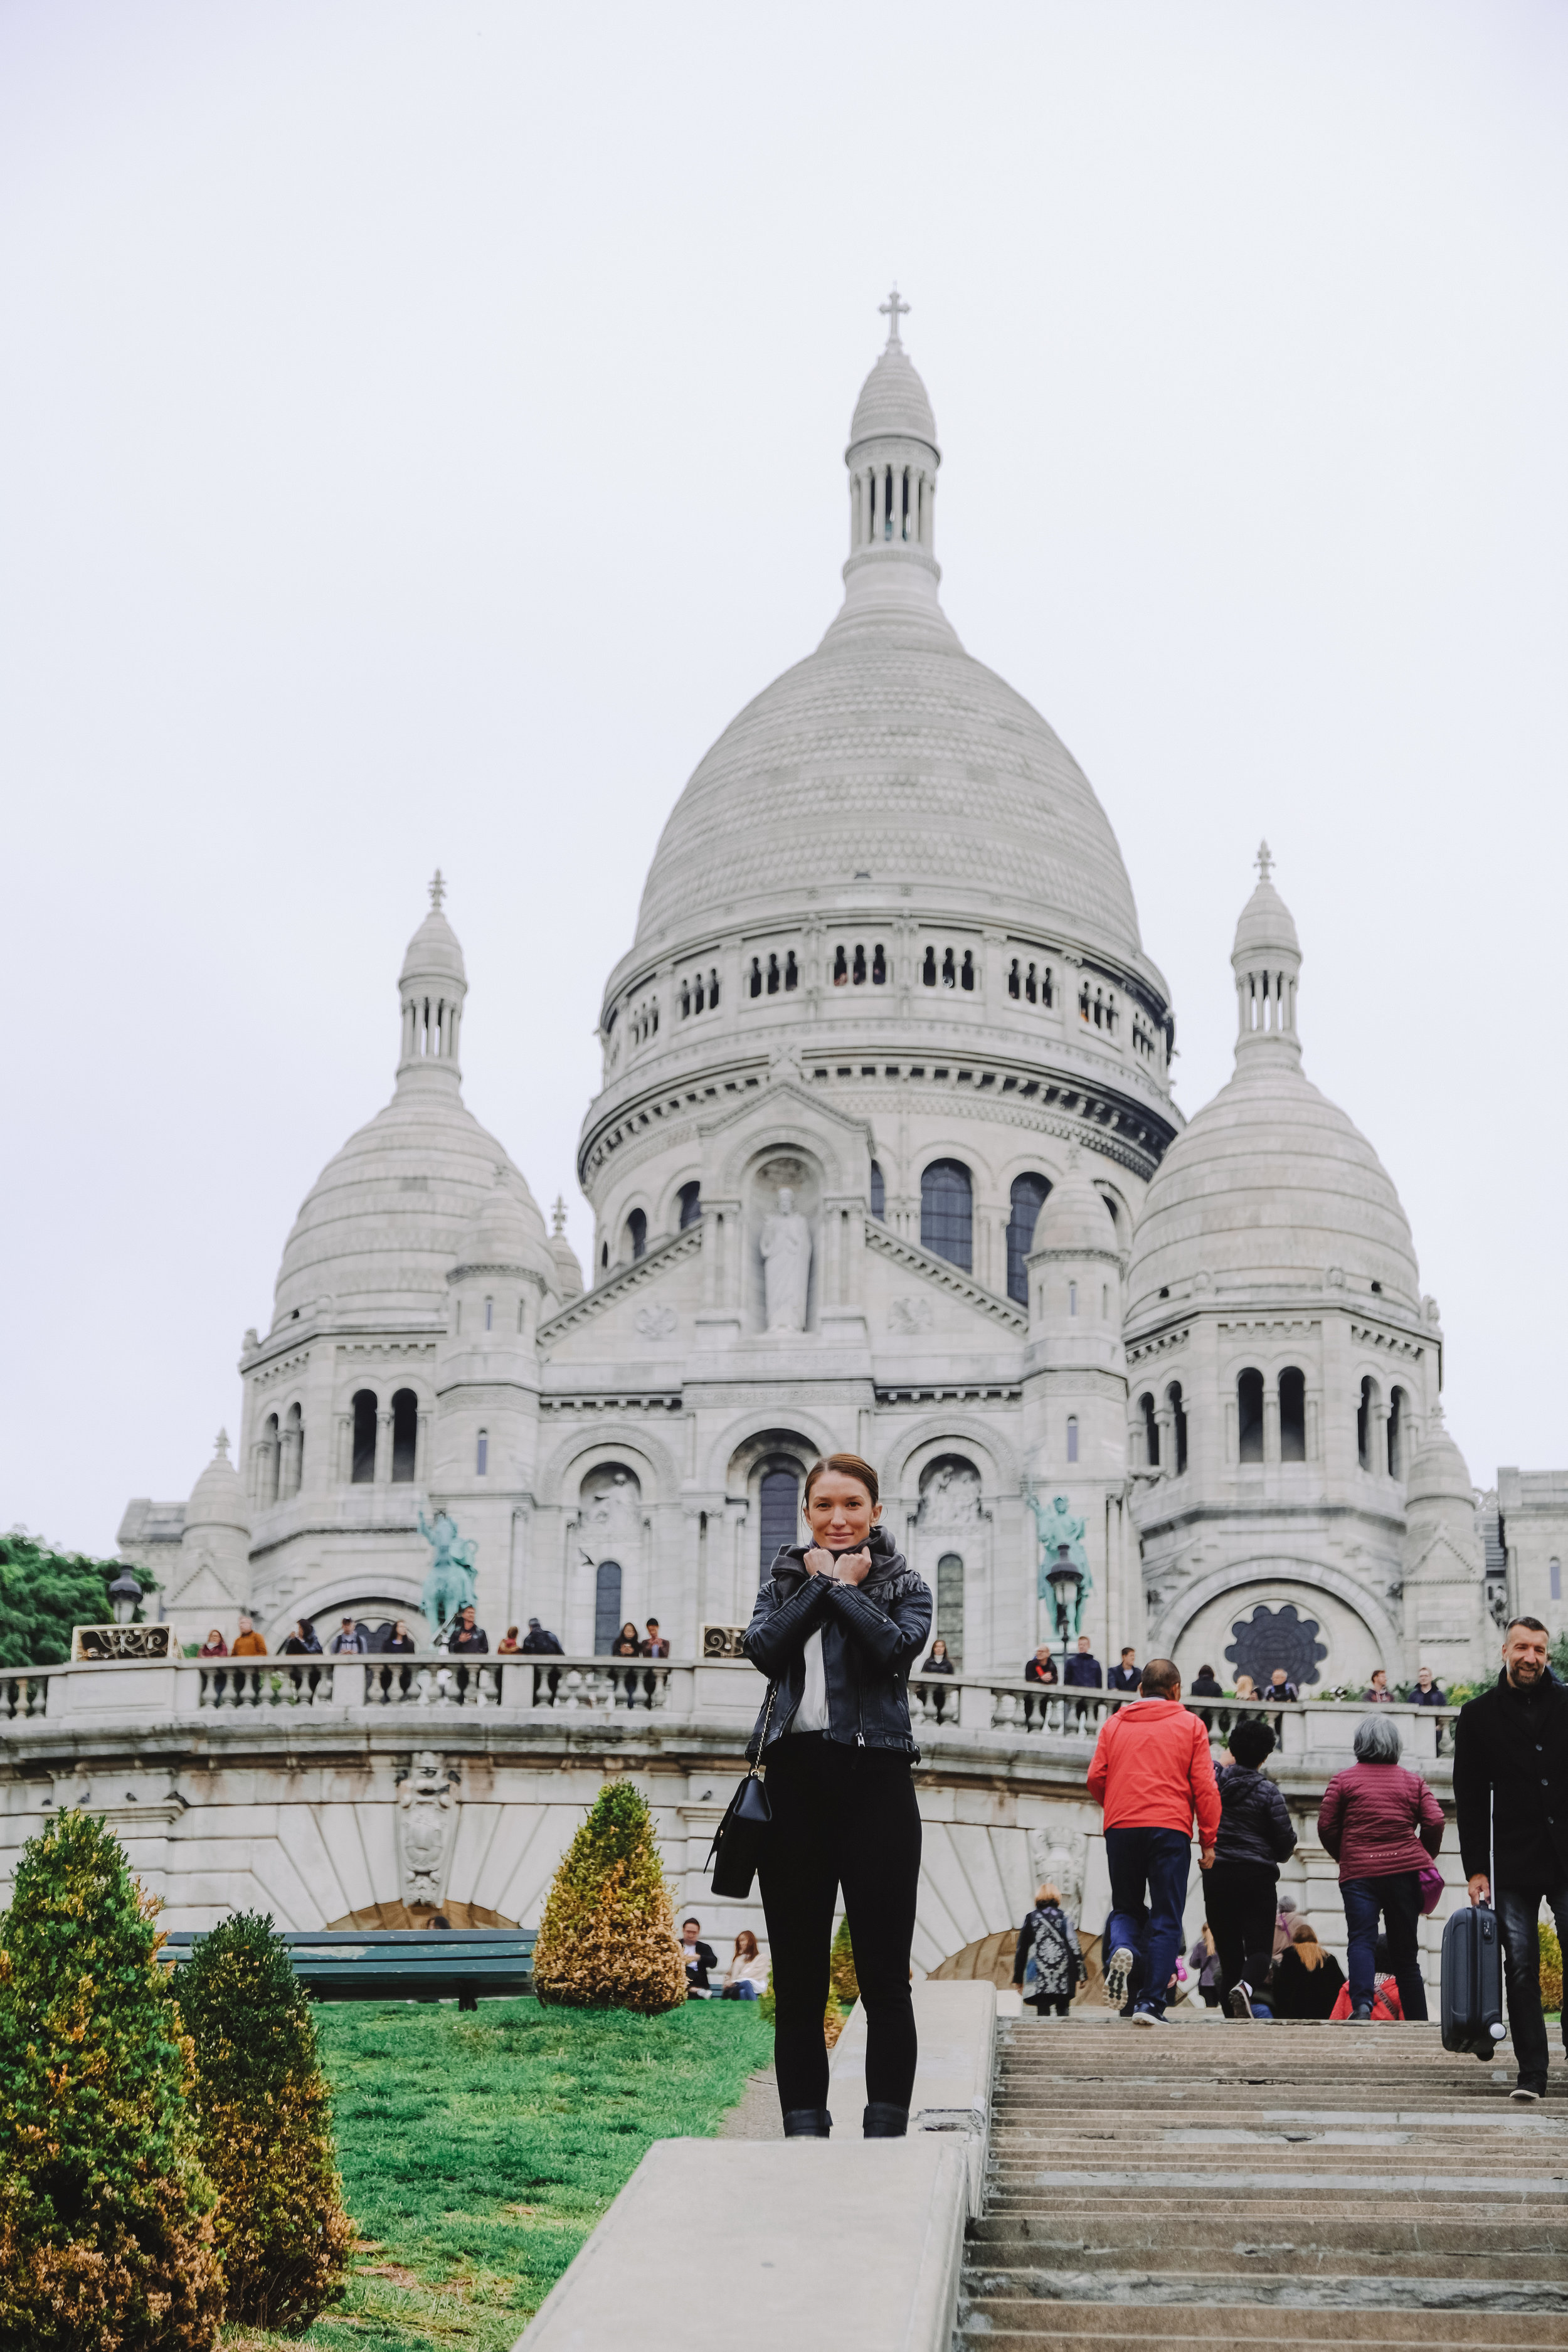 First tourist stop of the day was the Sacre Coeur